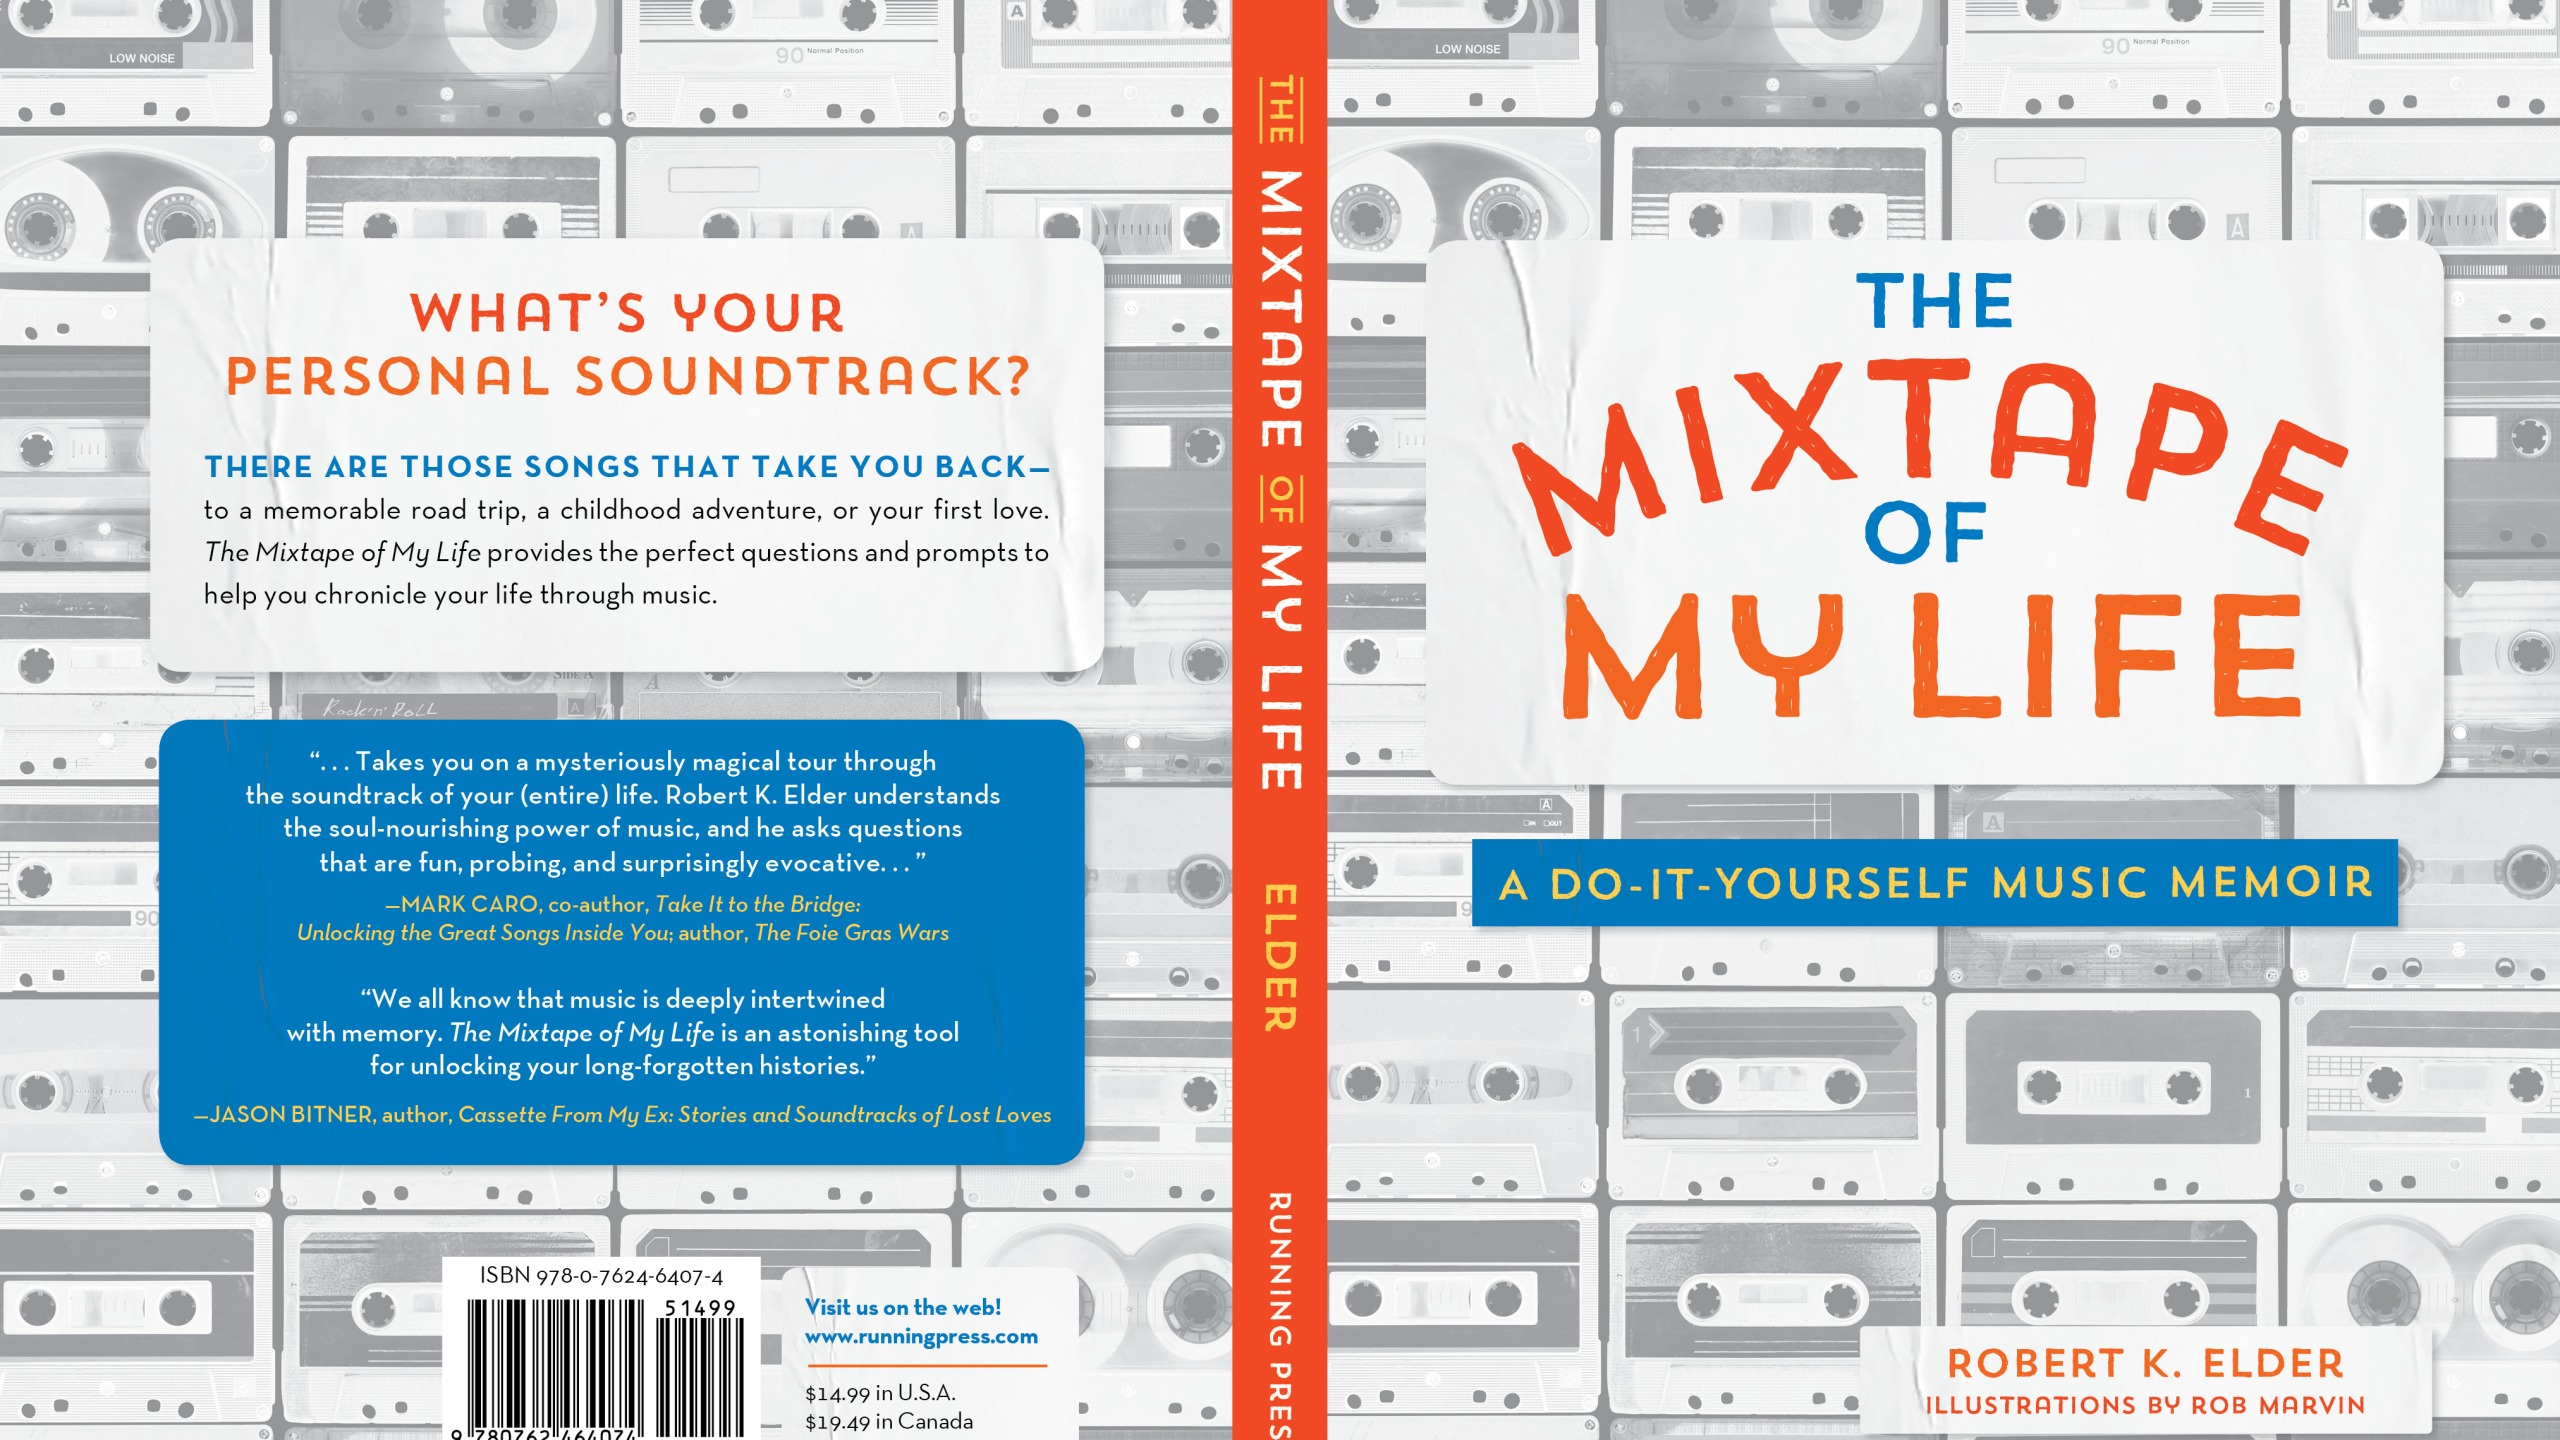 Wgn Nightside Amy Guth And Robert K Elder Play The Mixtape Of